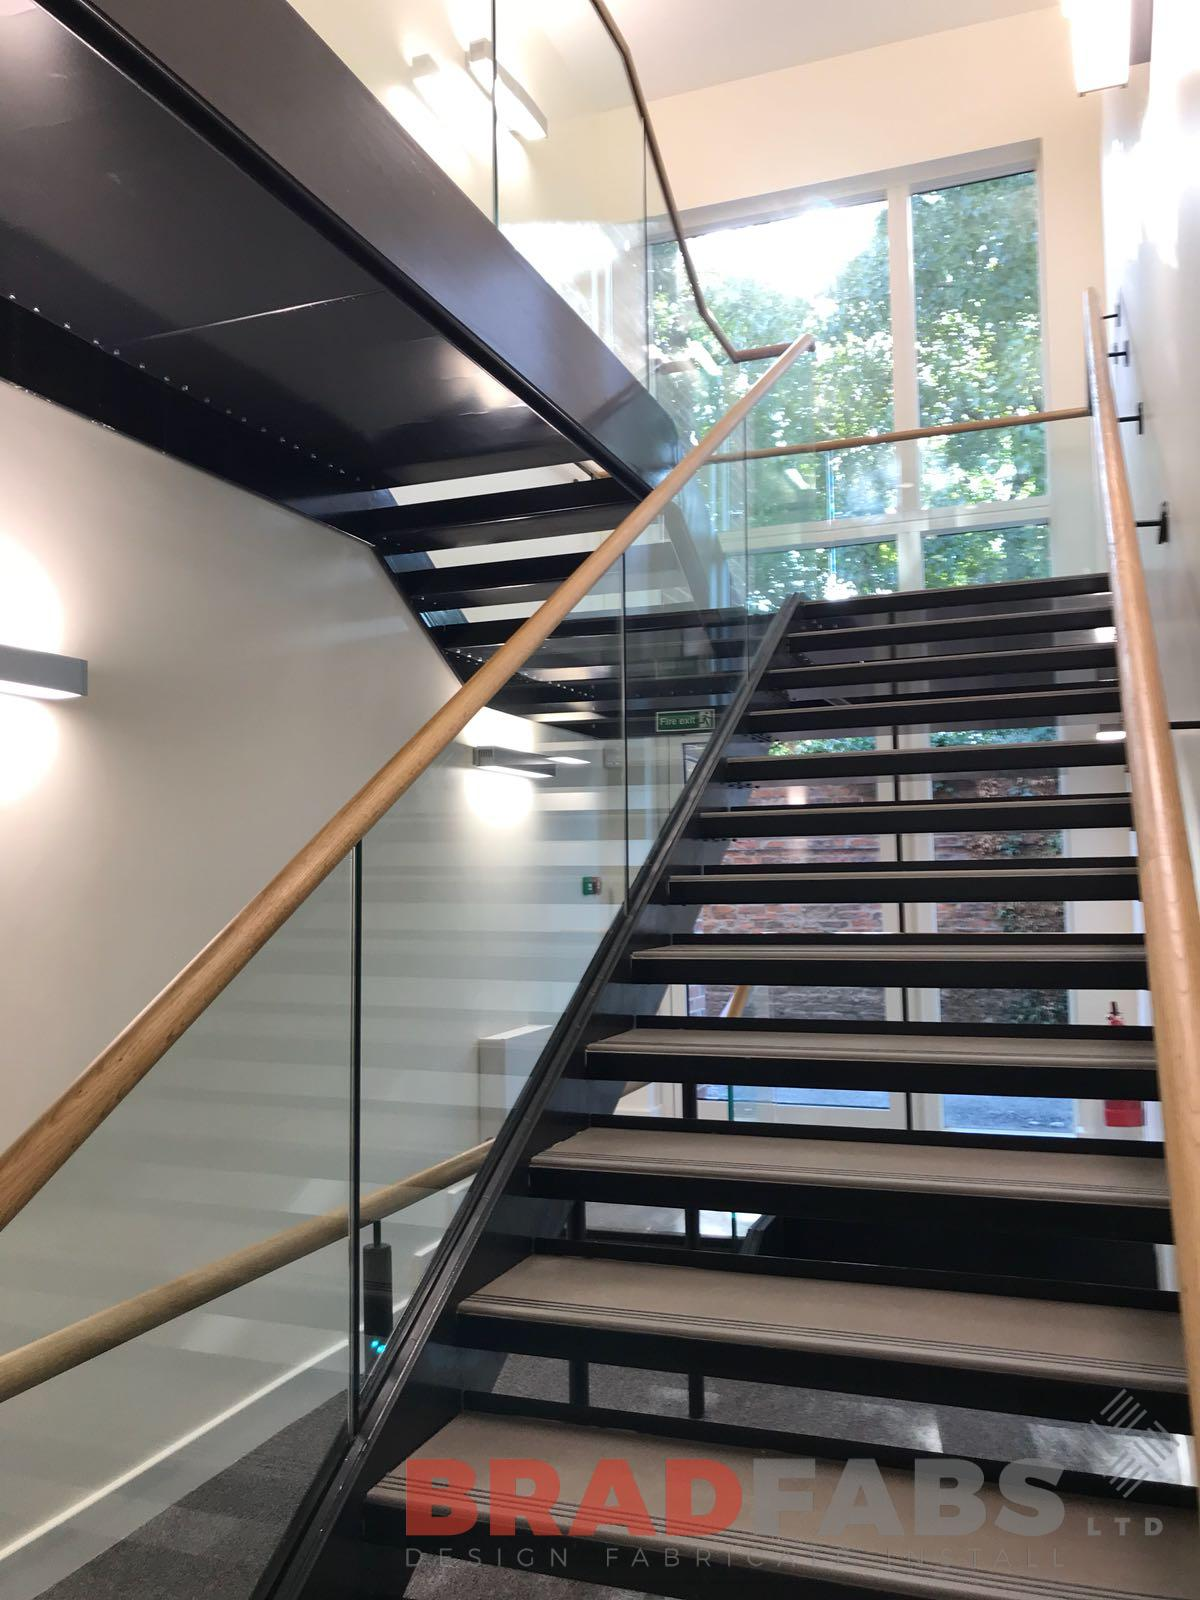 Wooden handrail, open treads, infinity glass balustrade, straight staircase